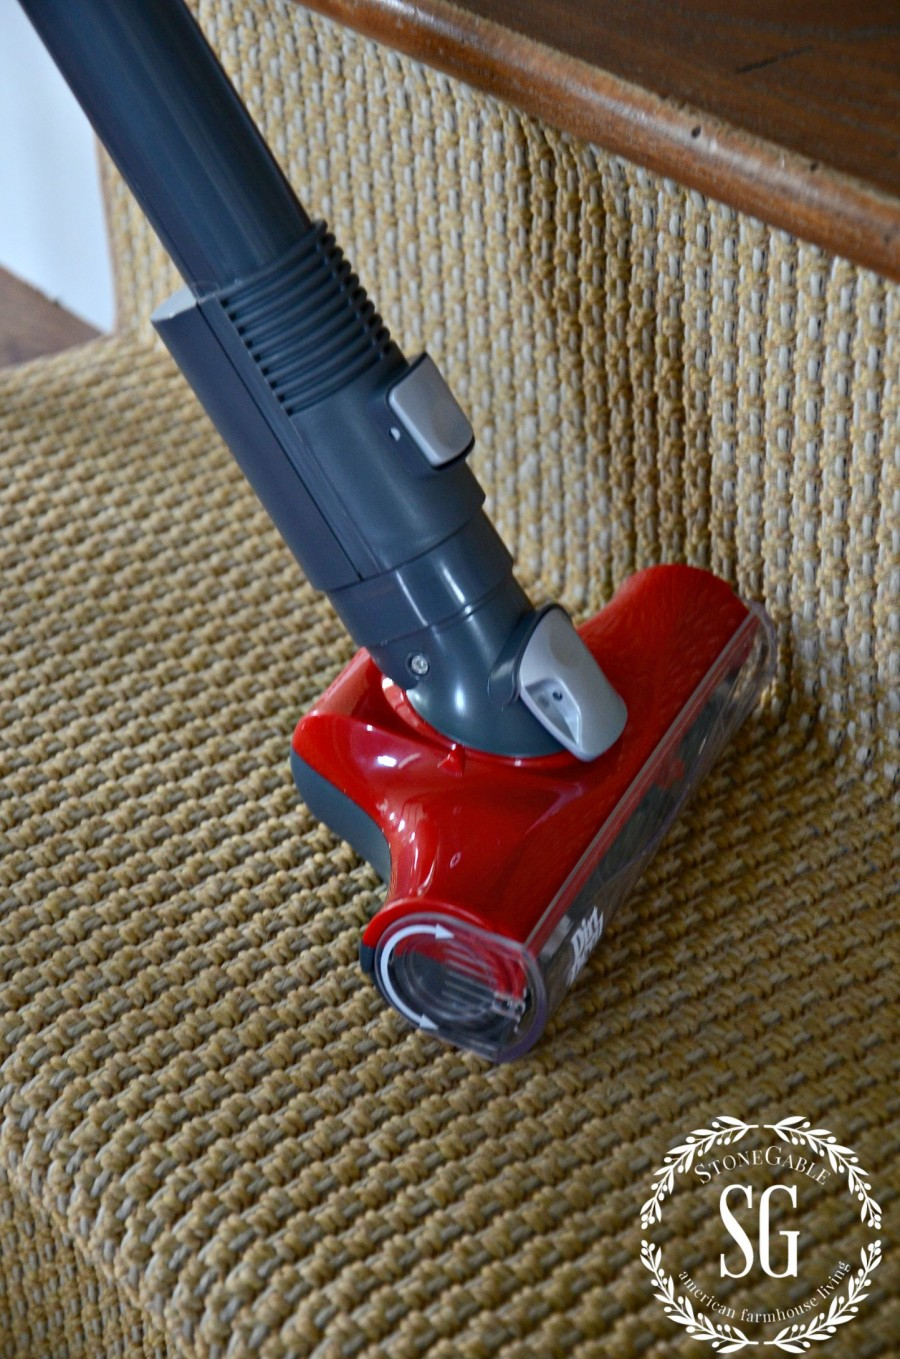 HOW TO CLEAN YOU HOME IN 30 MINUTES A DAY! cleaning the stairs-stonegableblog.com